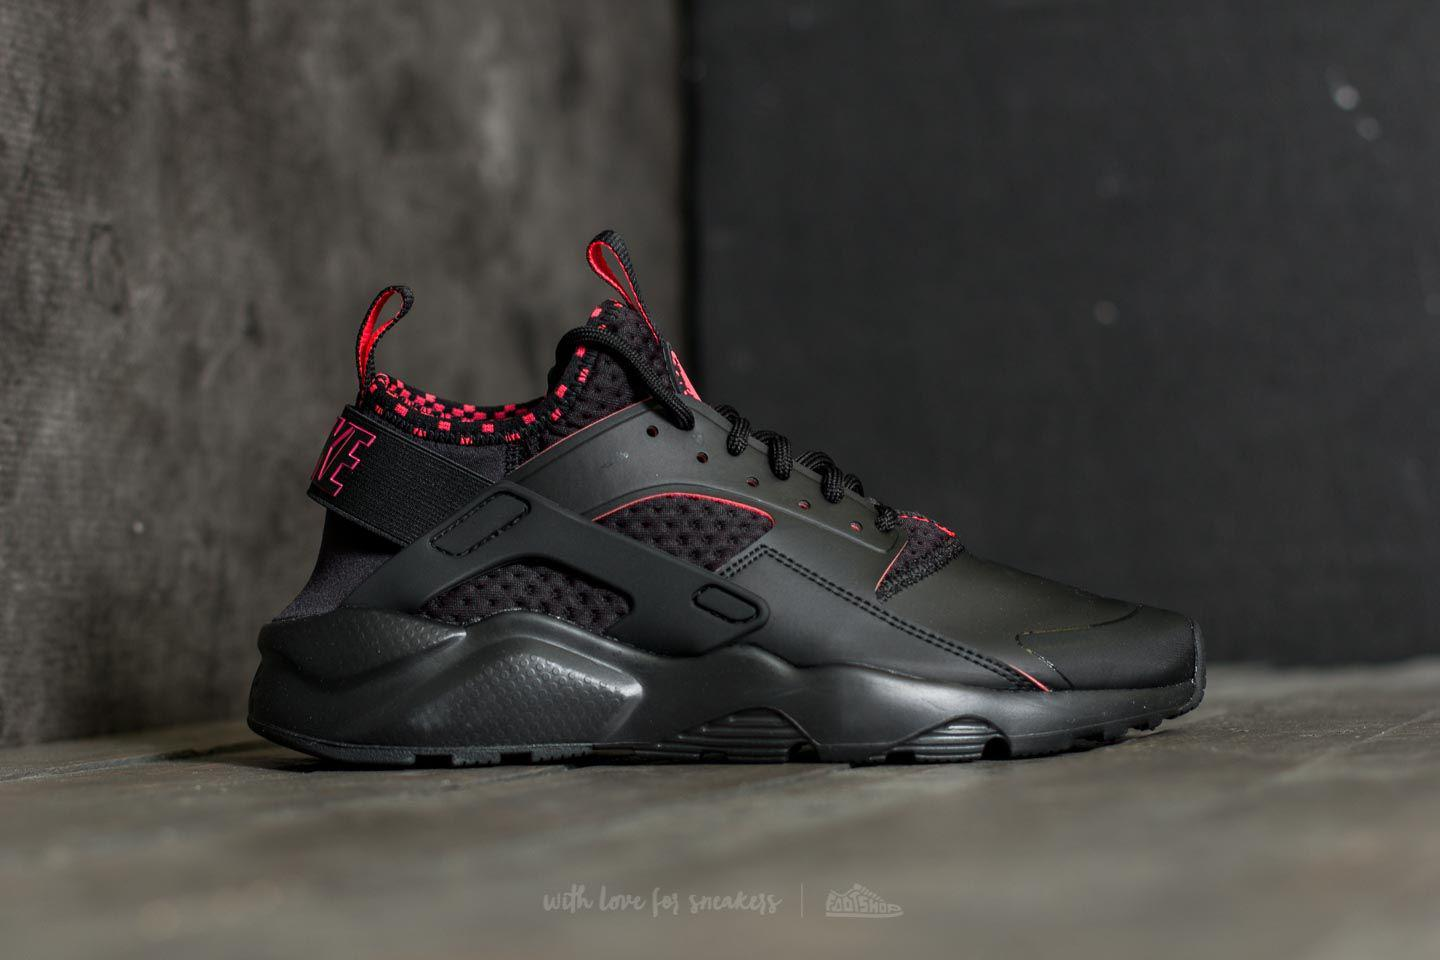 bfb23bb73dc8 Lyst - Nike Air Huarache Run Ultra Se Black  Solar Red-black in ...